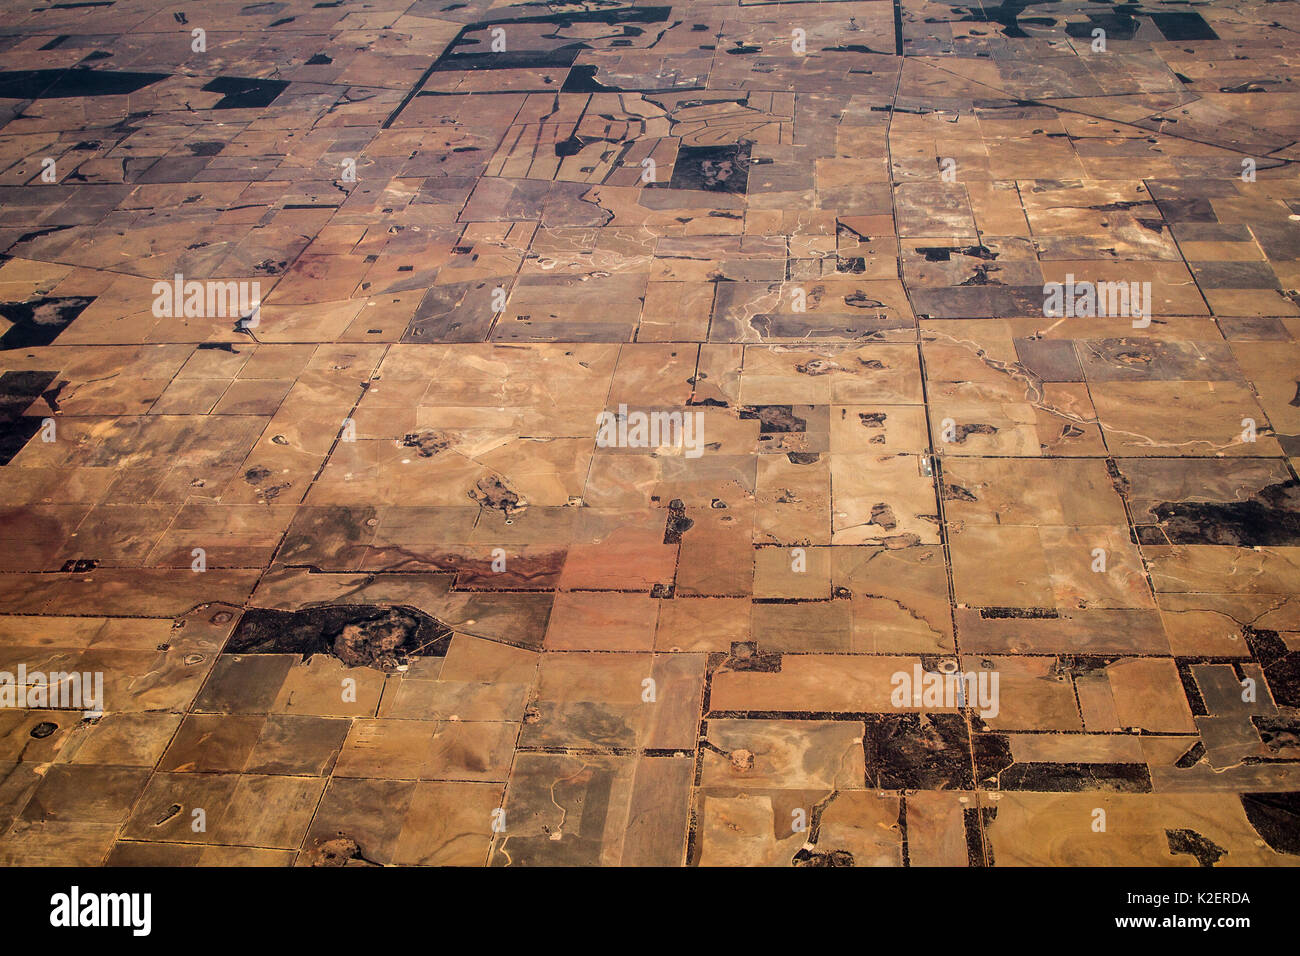 View from plane of landscape between Alice Springs and Perth, Australia, November. - Stock Image